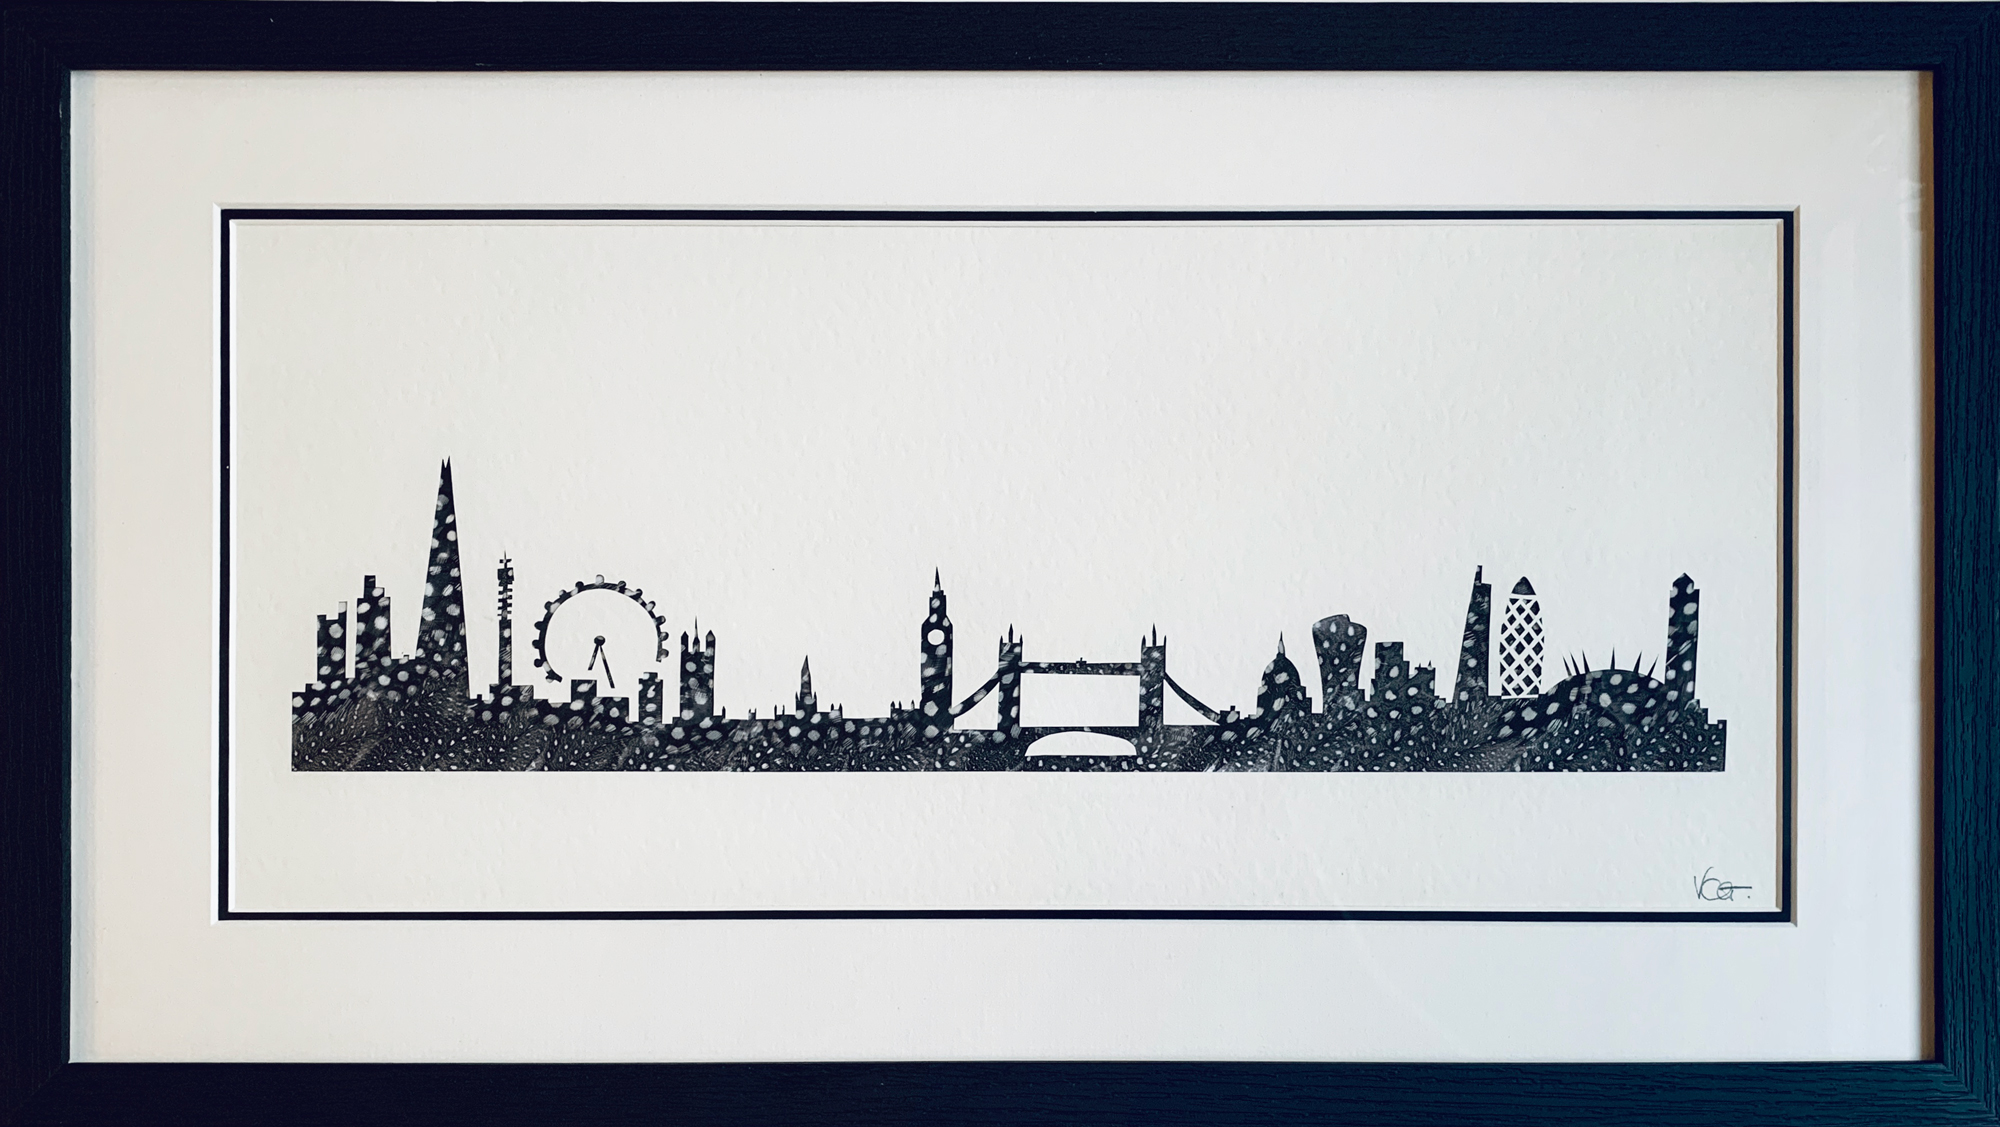 Victoria Chavasse | London City Skyline | Silhouette and feather art | 58x33cm | £445